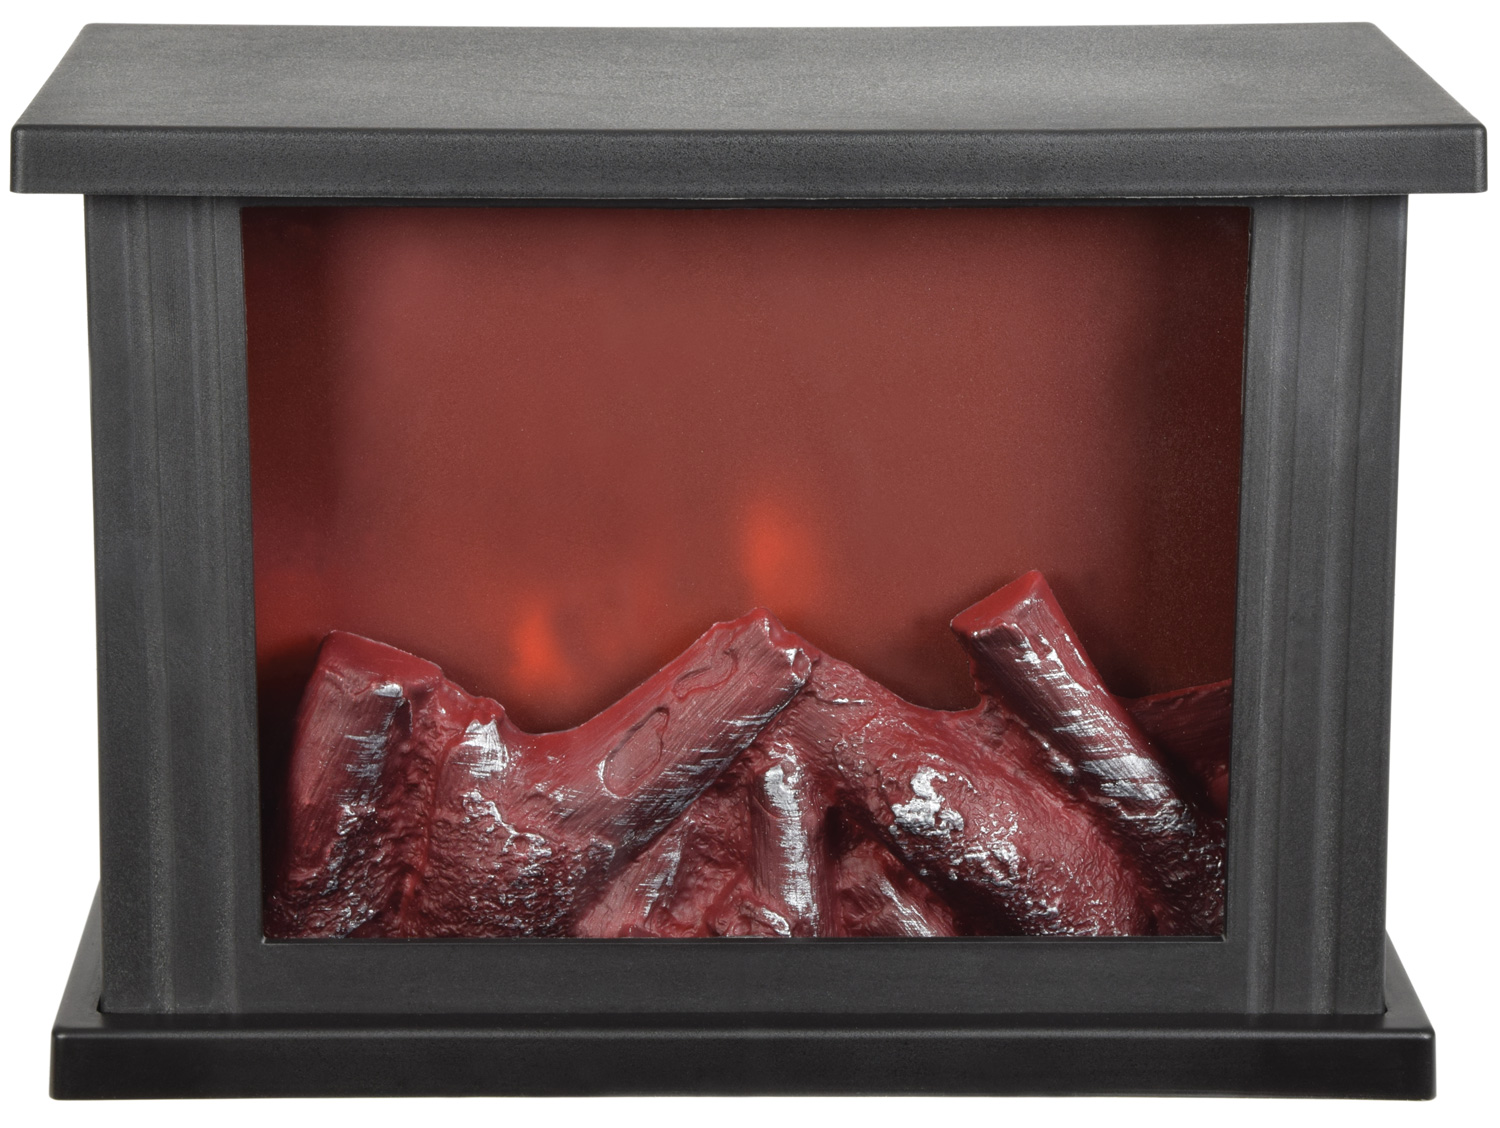 LED Fireplace Display